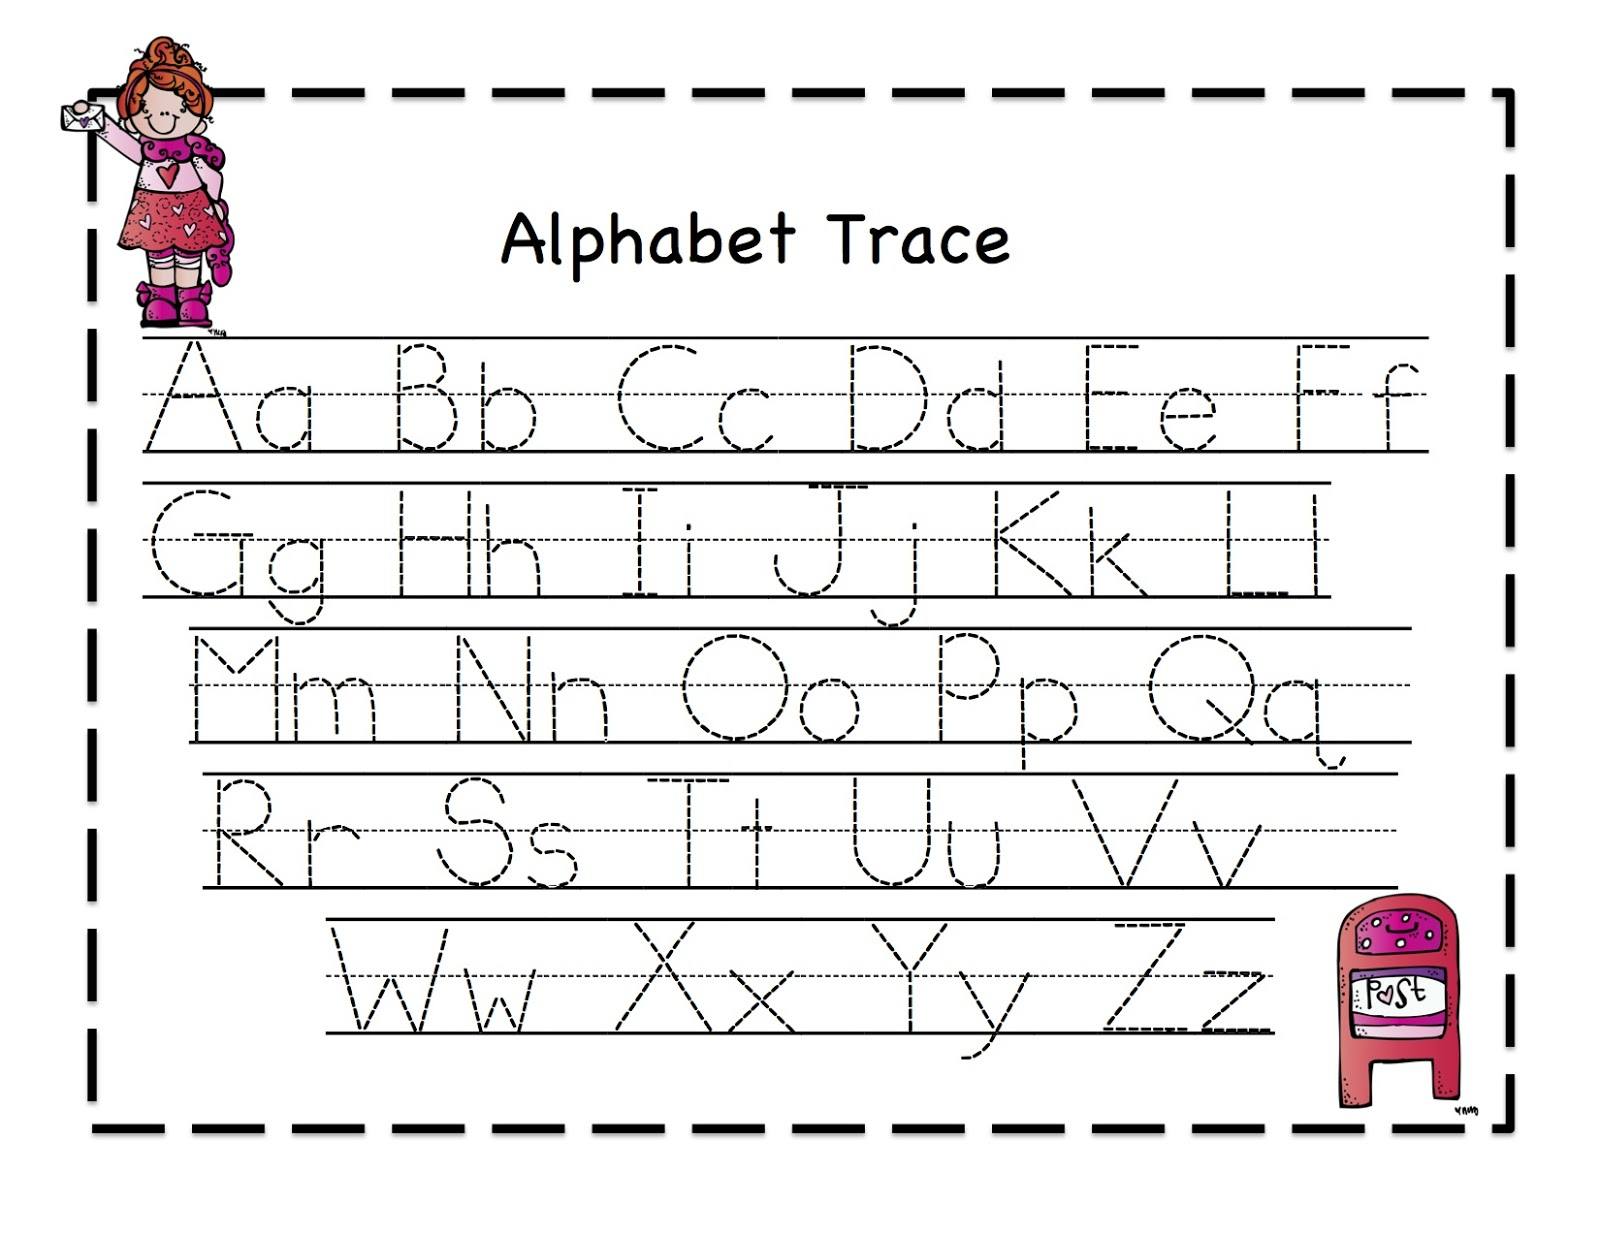 Worksheets Tracing Abc tracing abc worksheets rringband trace worksheet workbook site